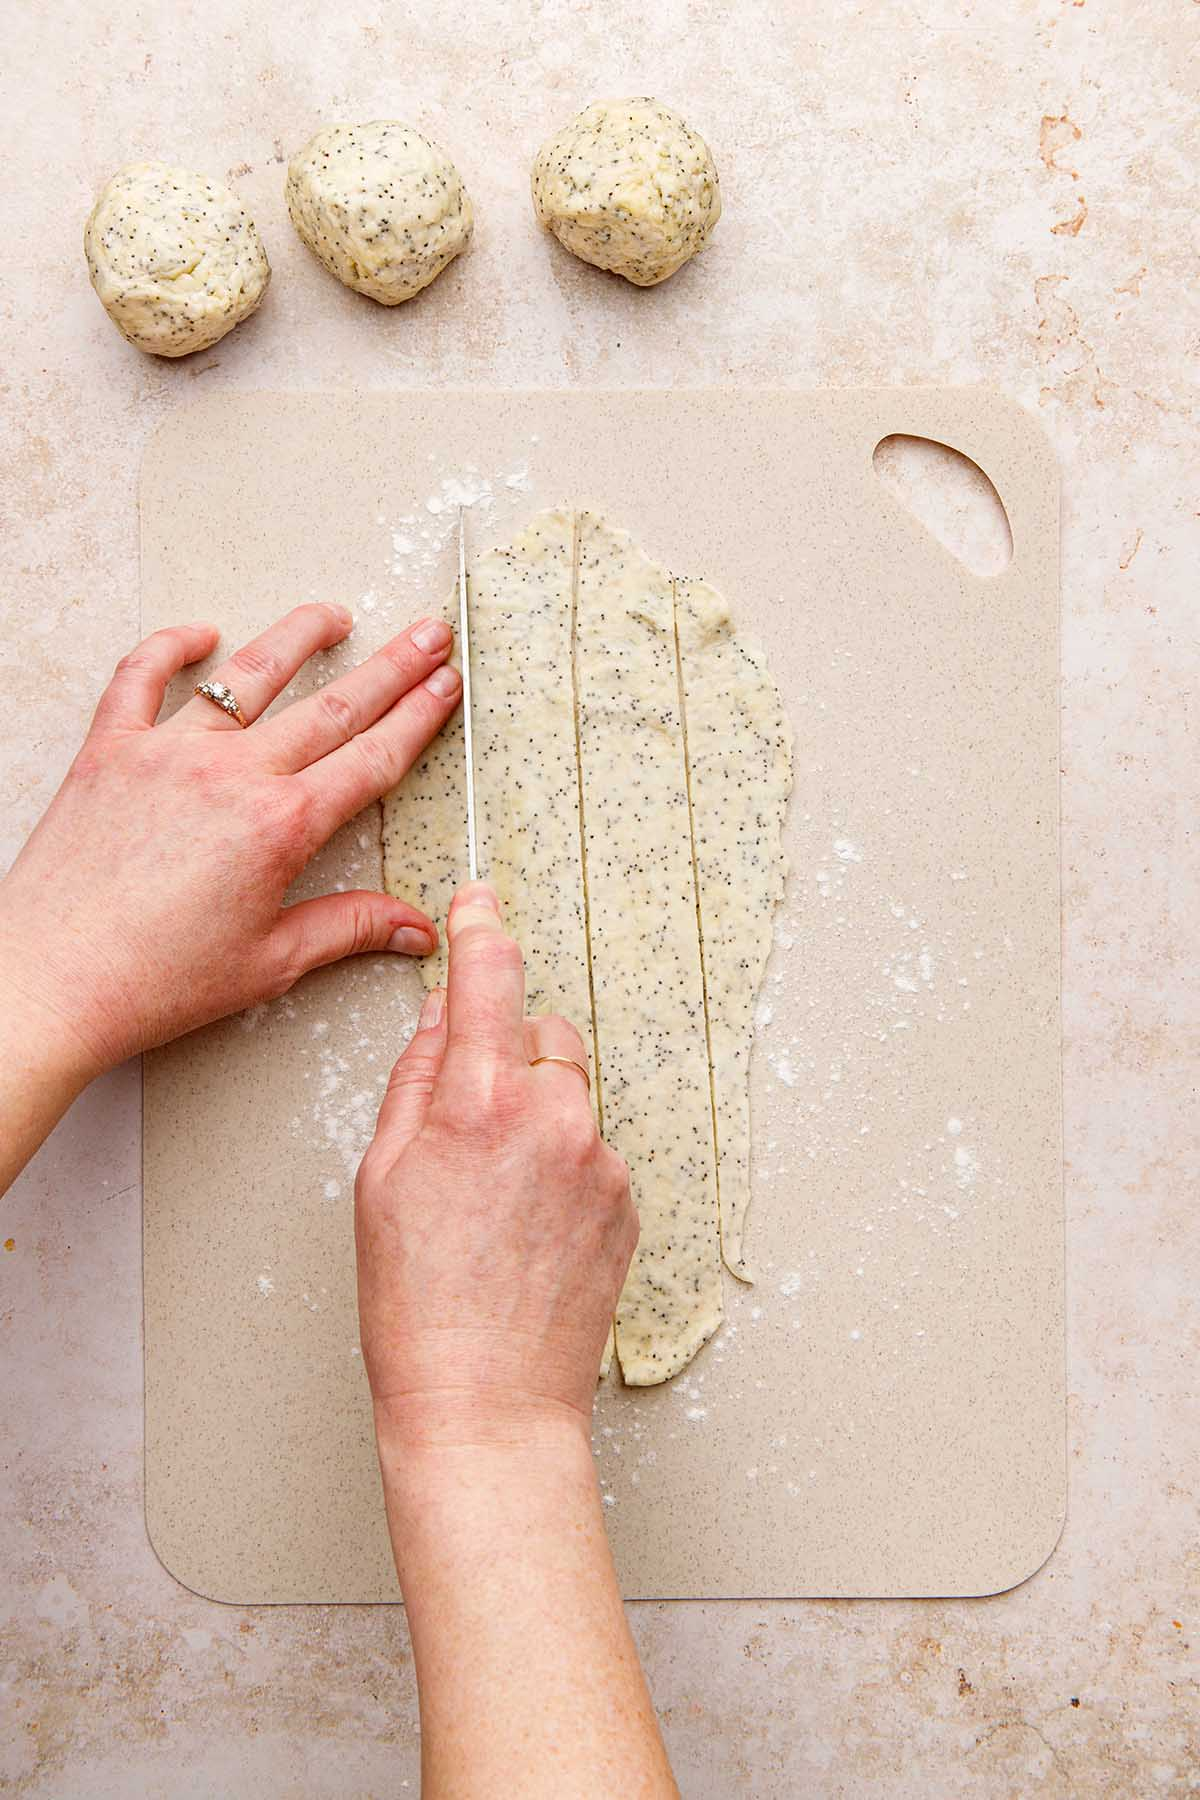 Hands slicing rolled out cracker dough with a knife.